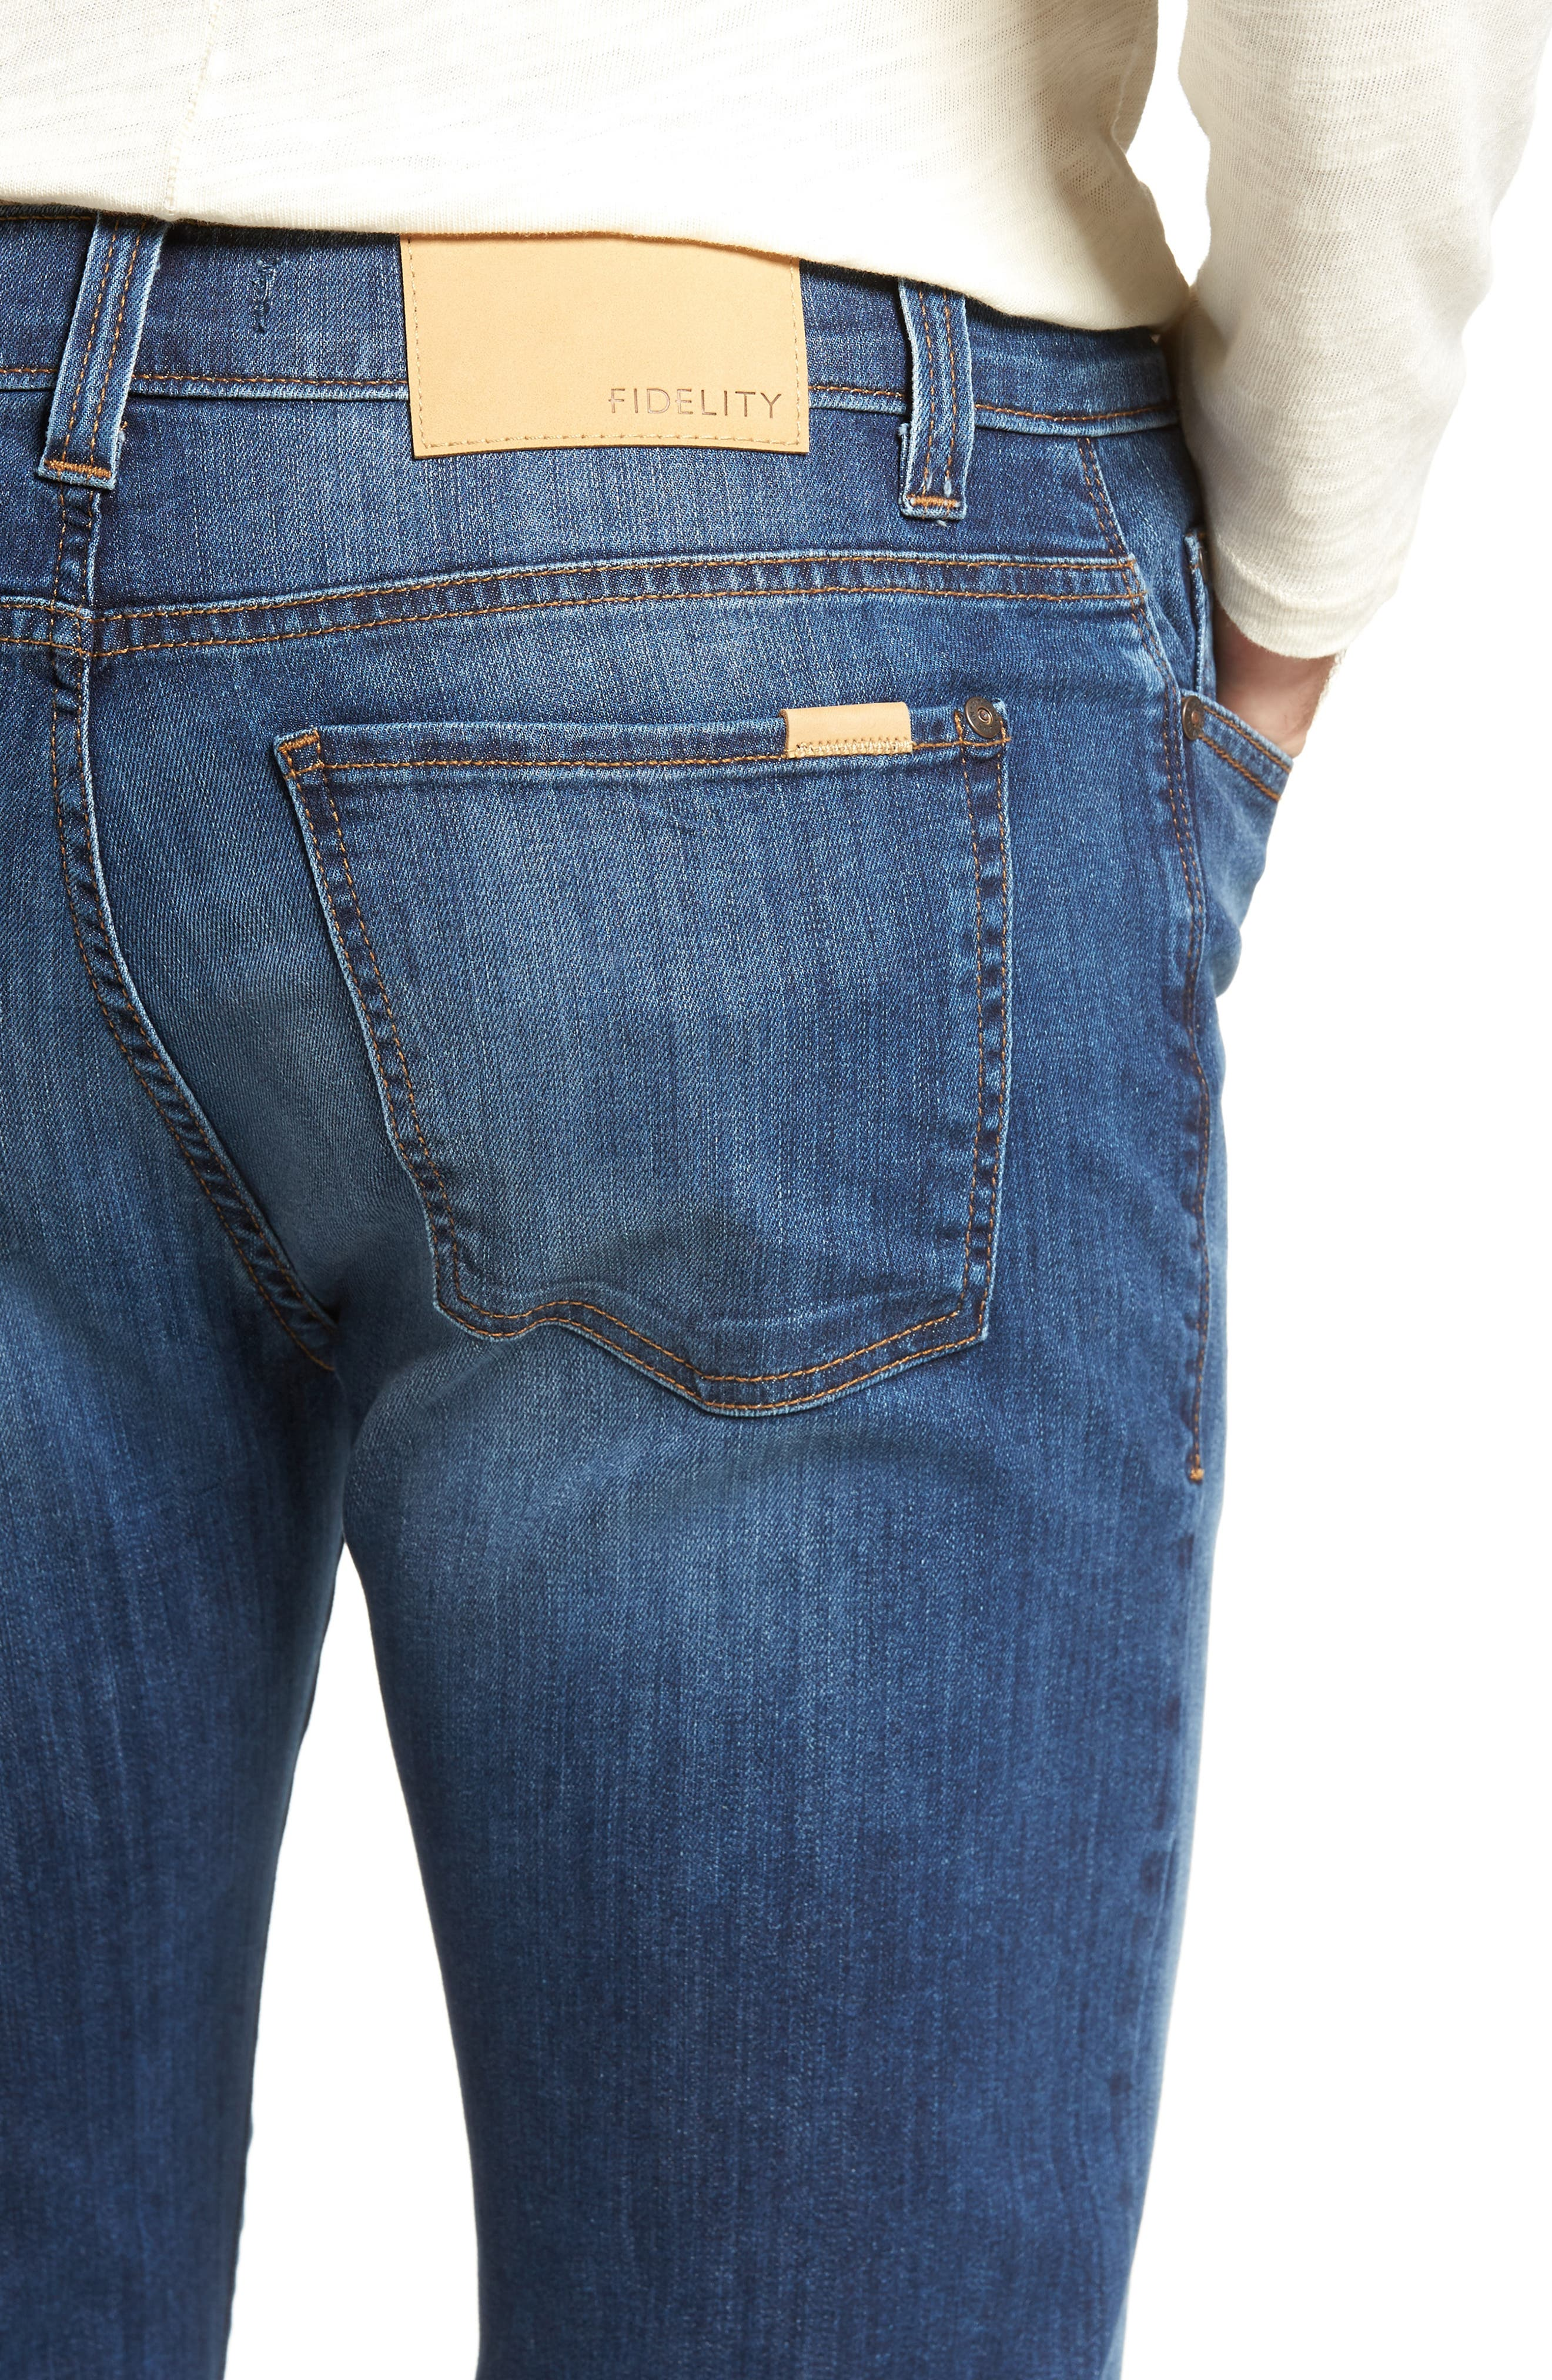 Alternate Image 4  - Fidelity Denim 5011 Relaxed Fit Jeans (Liverpool)